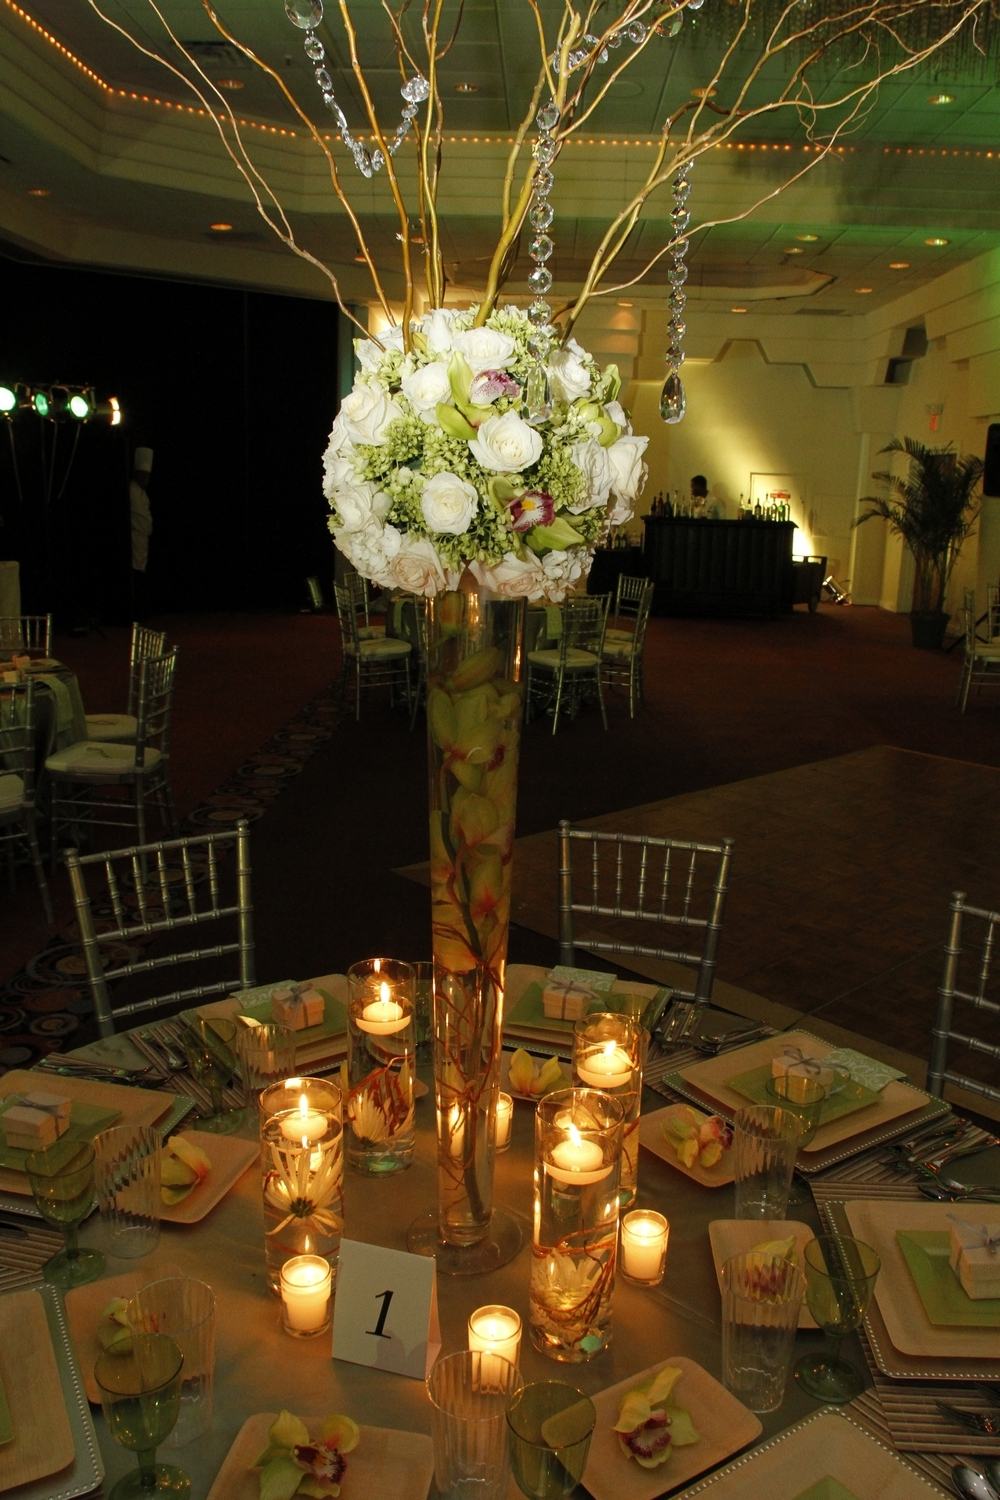 Finished-product-enchanted-garden-wedding-reception-green-natural-wood-gold-tablescape-high-topiari-centerpiece.full